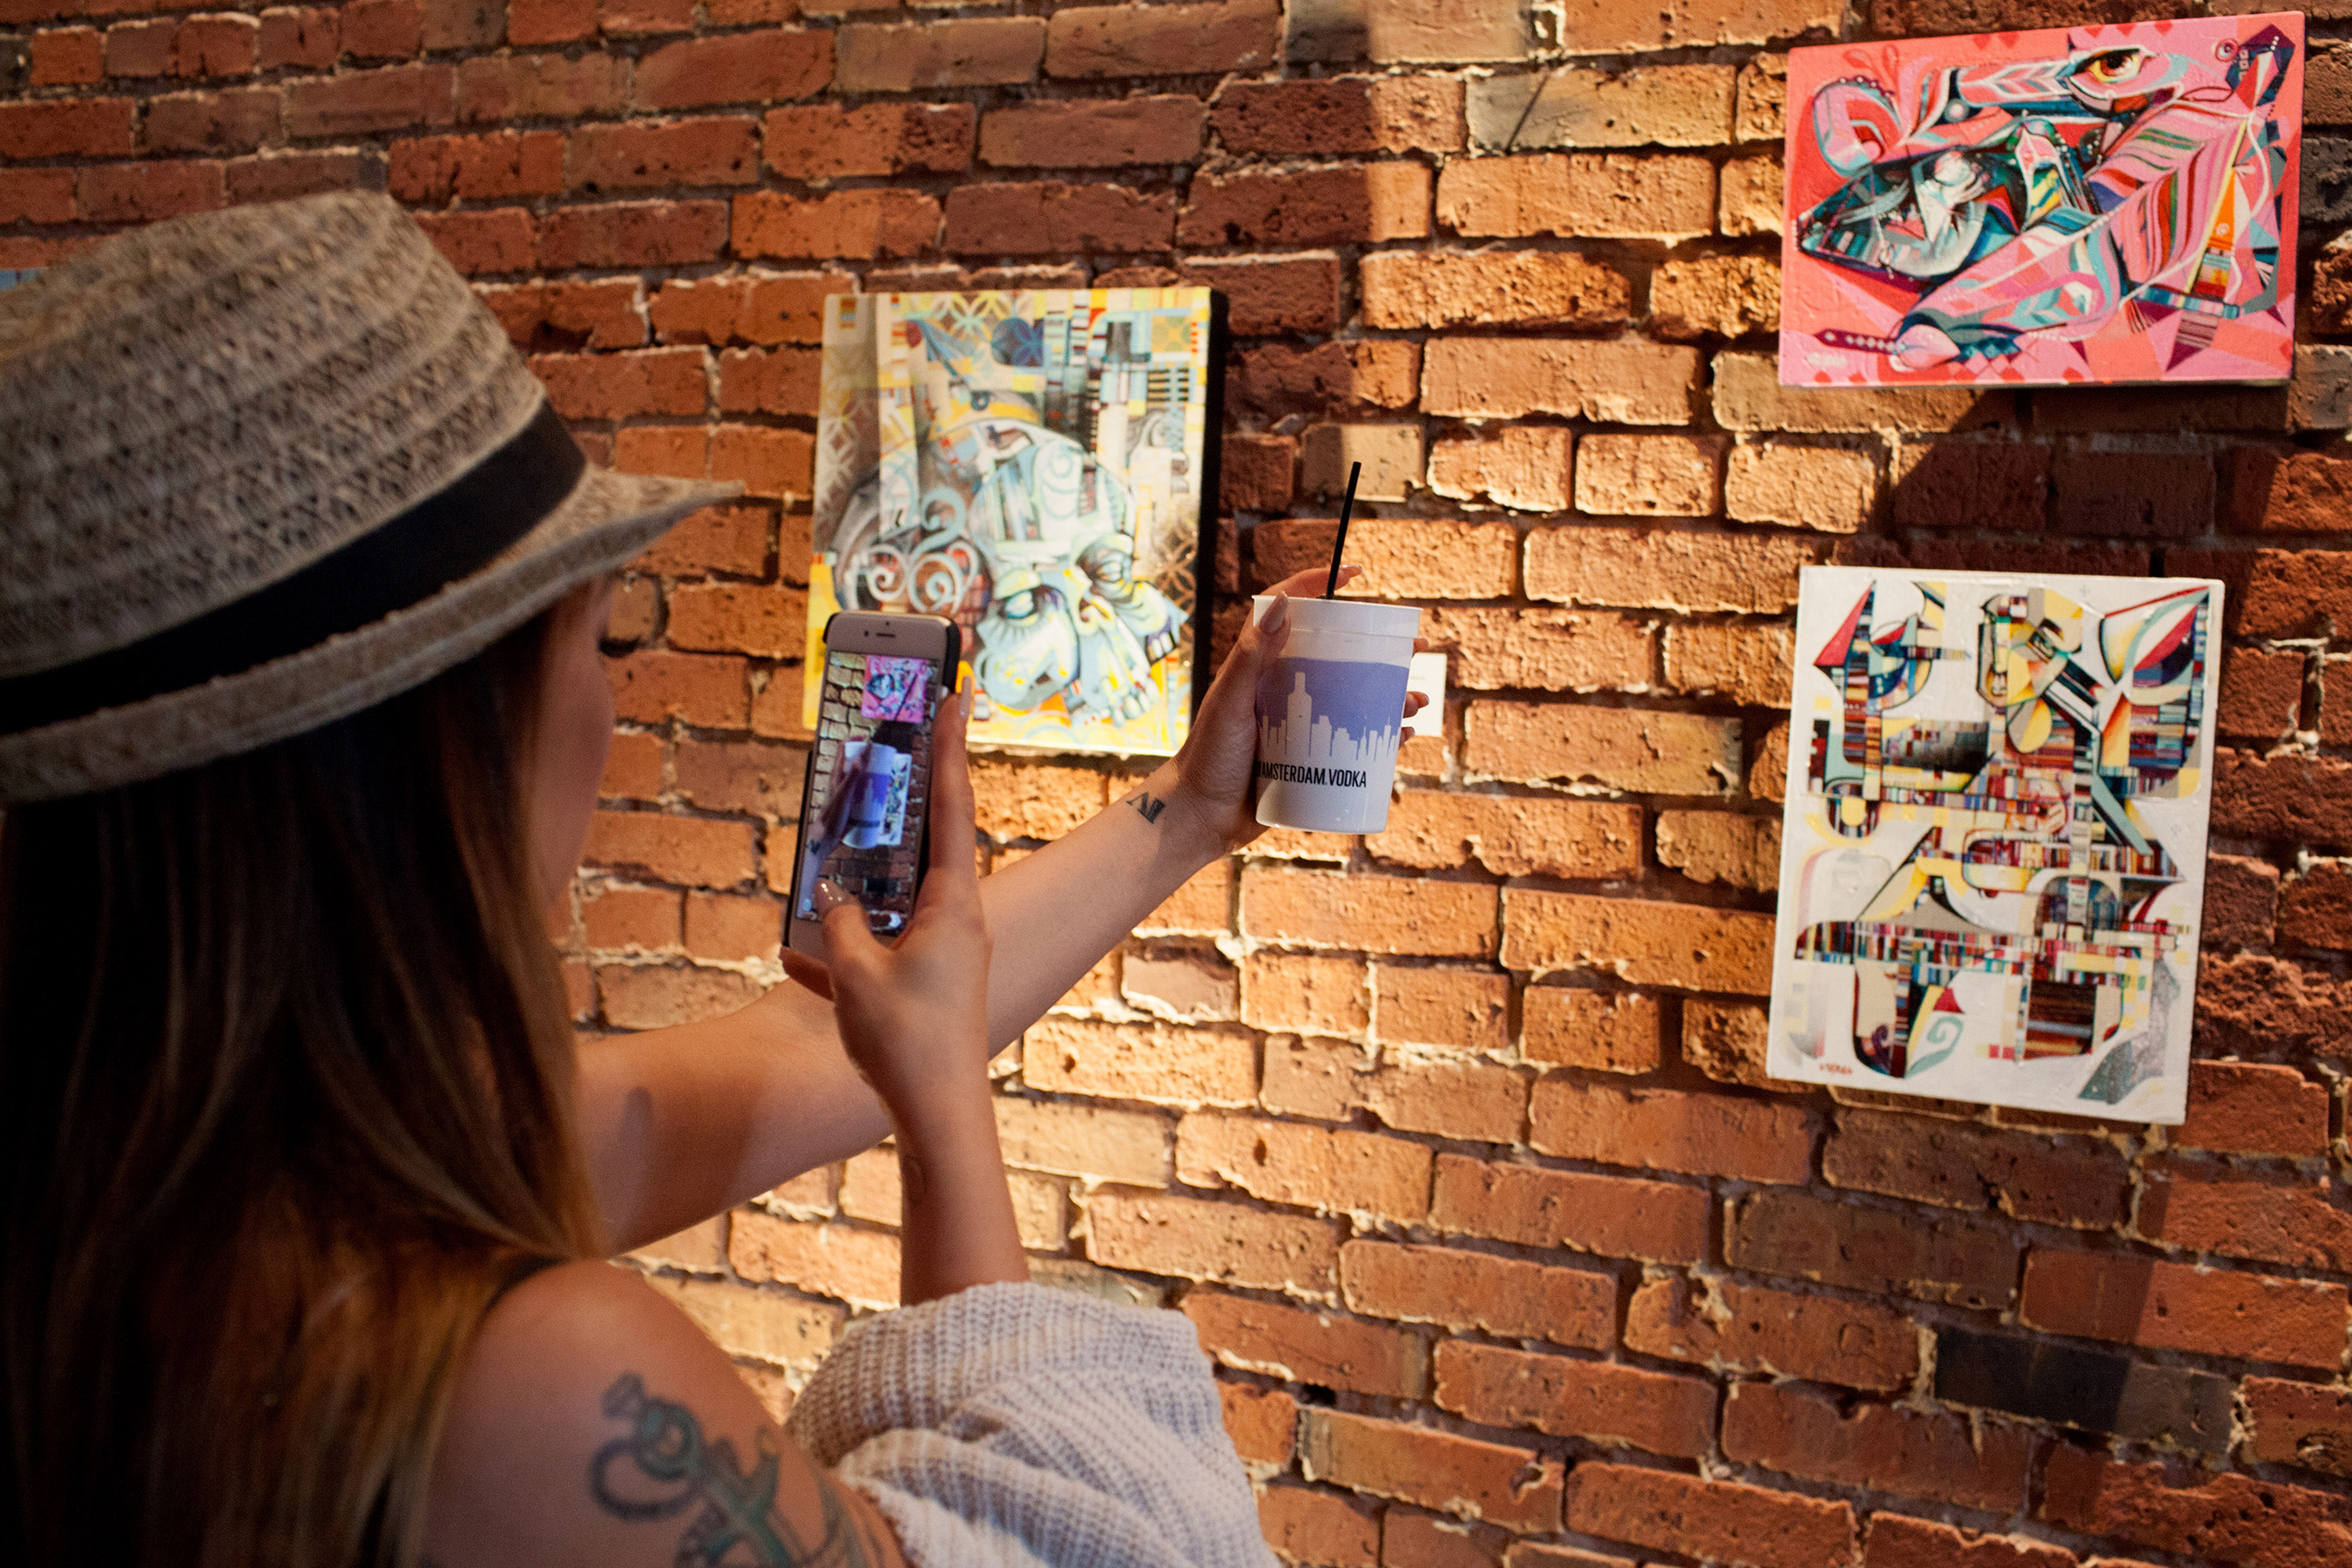 """A guest snaps photos while checking out John Osgood's Seattle-inspired street art at """"It's Your Town,"""" presented by New Amsterdam Vodka at Axis Pioneer Square on Wednesday, April 6, 2016 in Seattle."""